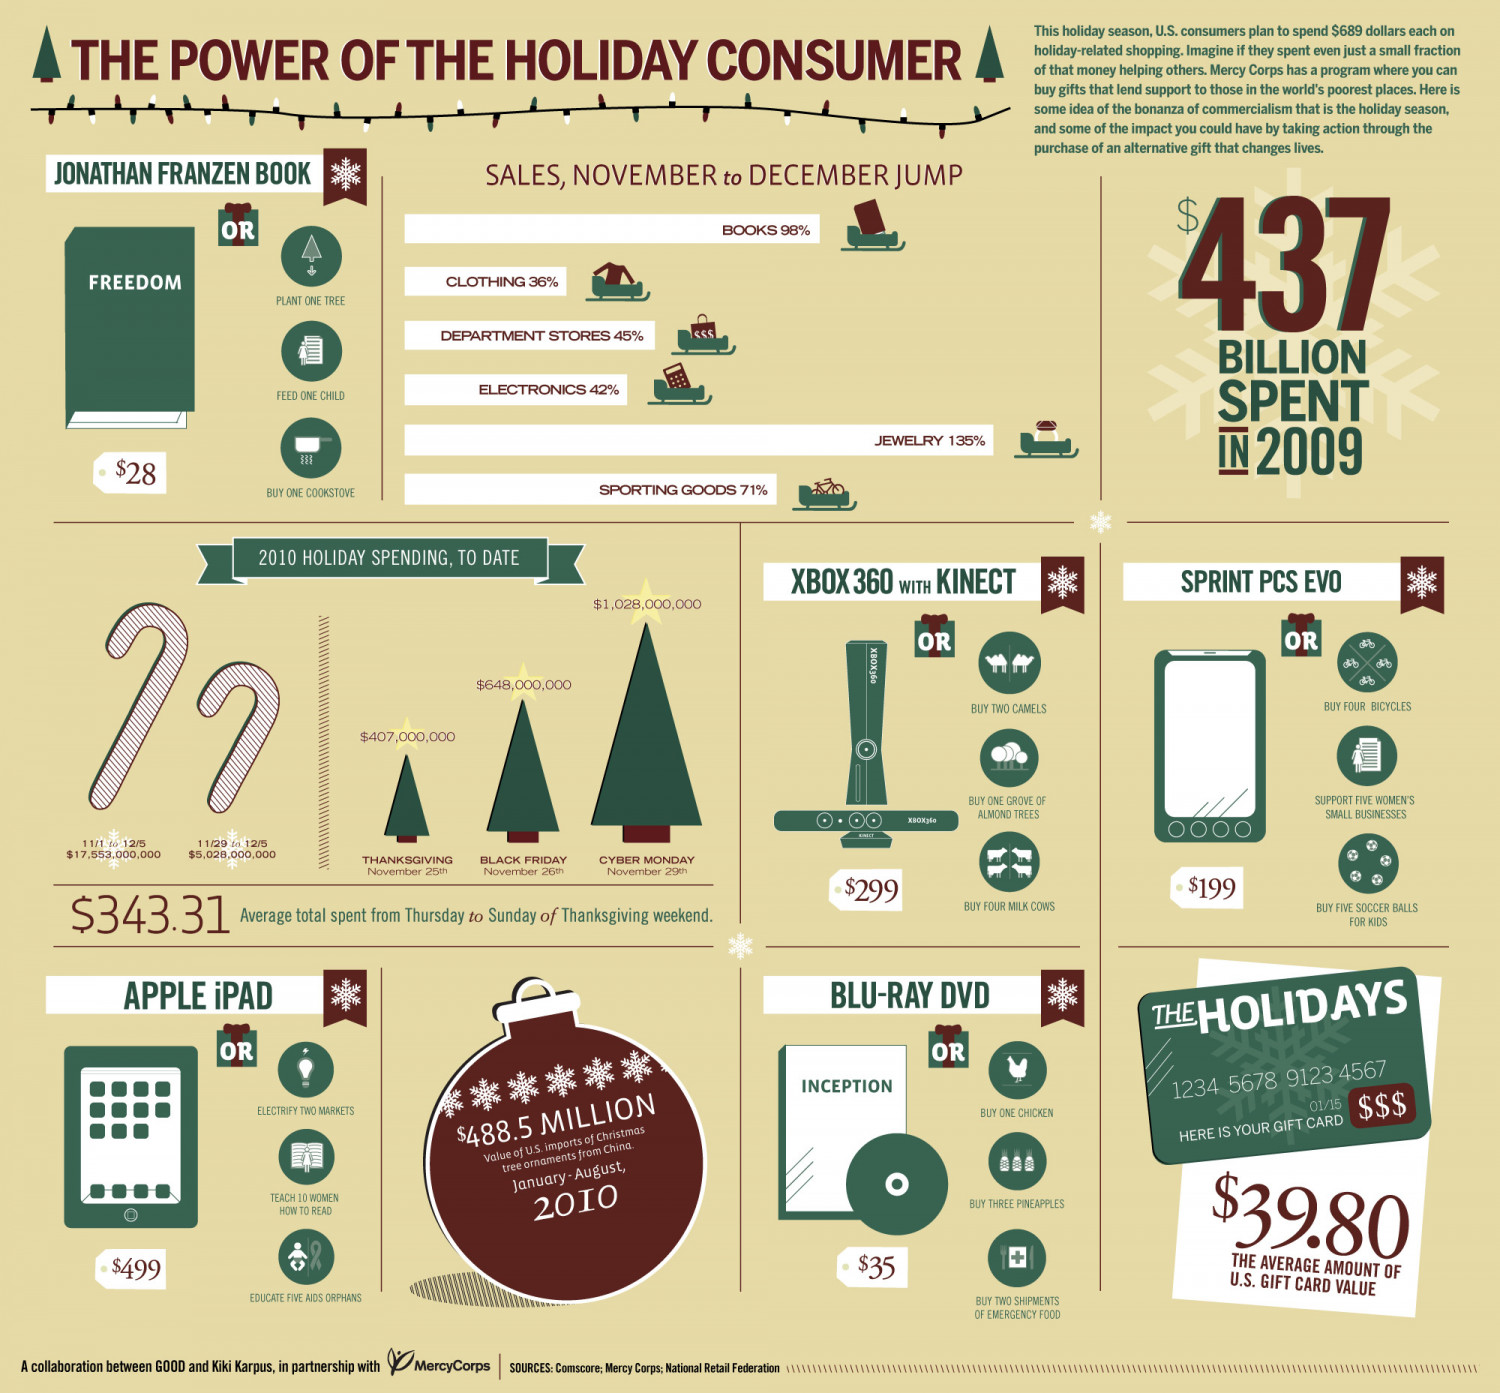 The Power of the Holiday Consumer Infographic